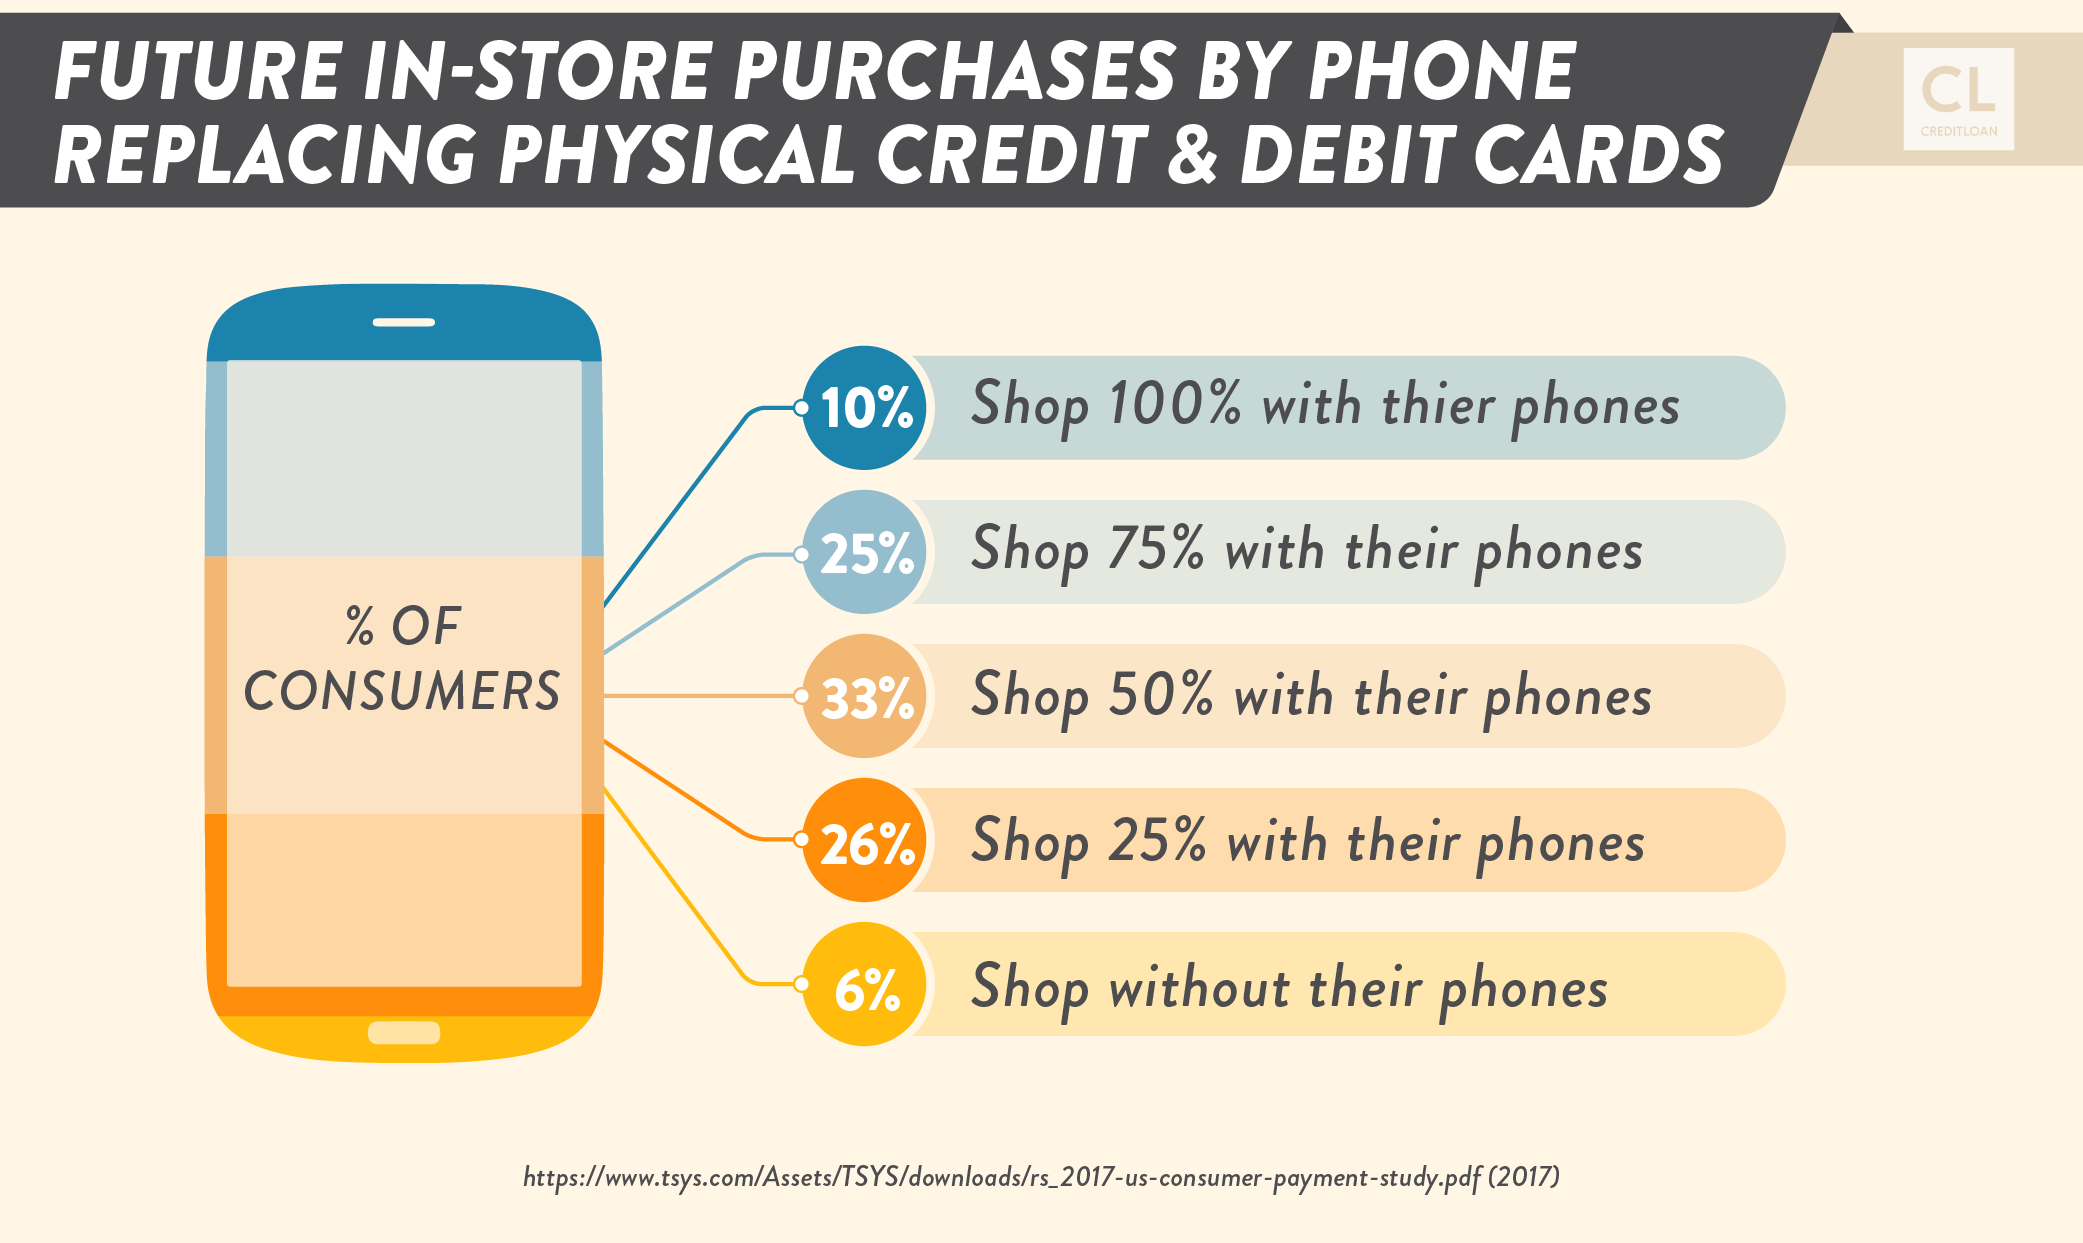 Future In-store Purchases by Phone Replacing Physical Credit & Debit Cards